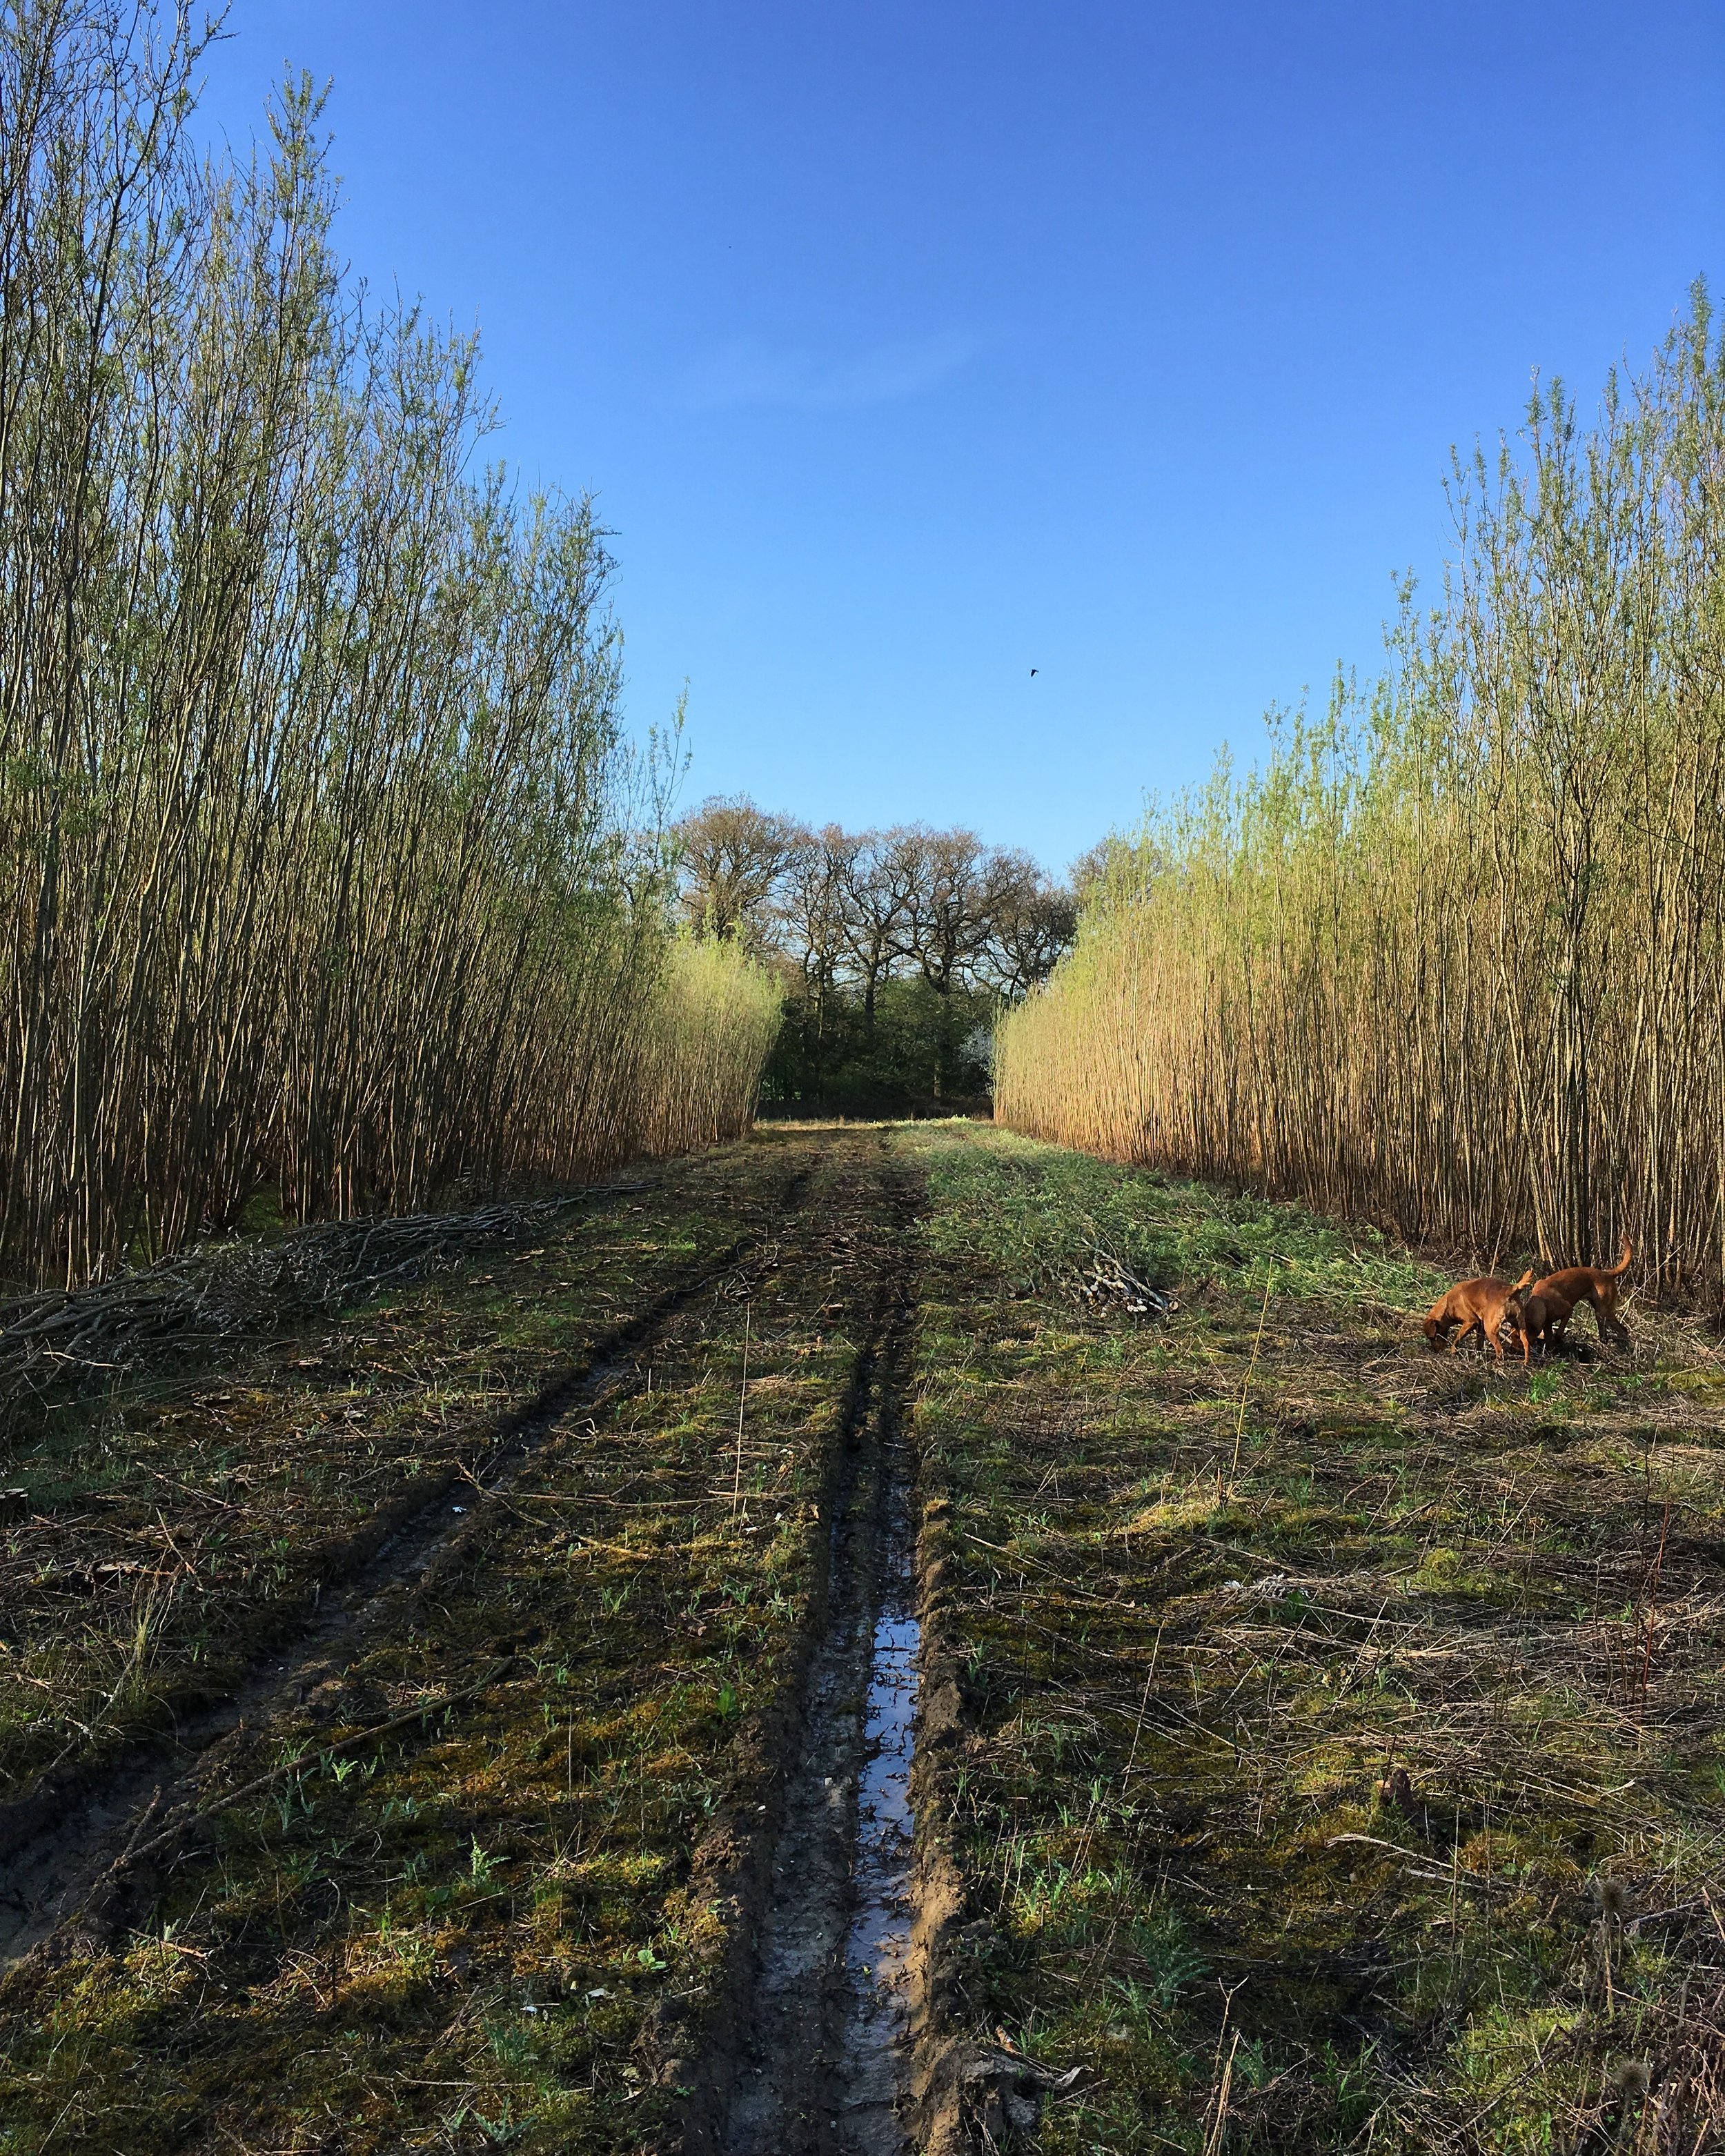 What is the wood you use to weave with? - We weave with willow. We cut all of our willow from local willow beds which were originally planted for biomass. The willow is a hybrid which grows very tall, very fast and very straight. Willow is a coppice product, therefore, once cut it will grow again. We cut our willow ideally in a 2 year rotation, so the rods that we are using in your fence are between 2-3 years old and roughly 10-15ft long and varying in thickness. The willow used for every job is freshly cut; we cut all year round. Willow is our preference over hazel, however, we can weave in hazel if you would rather. We prefer the look of woven willow; it compliments a wider range of gardens than the more rustic look that hazel gives. Furthermore, the rods we use are straighter than hazel rods, giving cleaner, more uniformed lines. We also see the benefits of using thicker willow rods as it makes for stronger, longer lasting structures as well as defining the beautiful plaits you see in the weave.